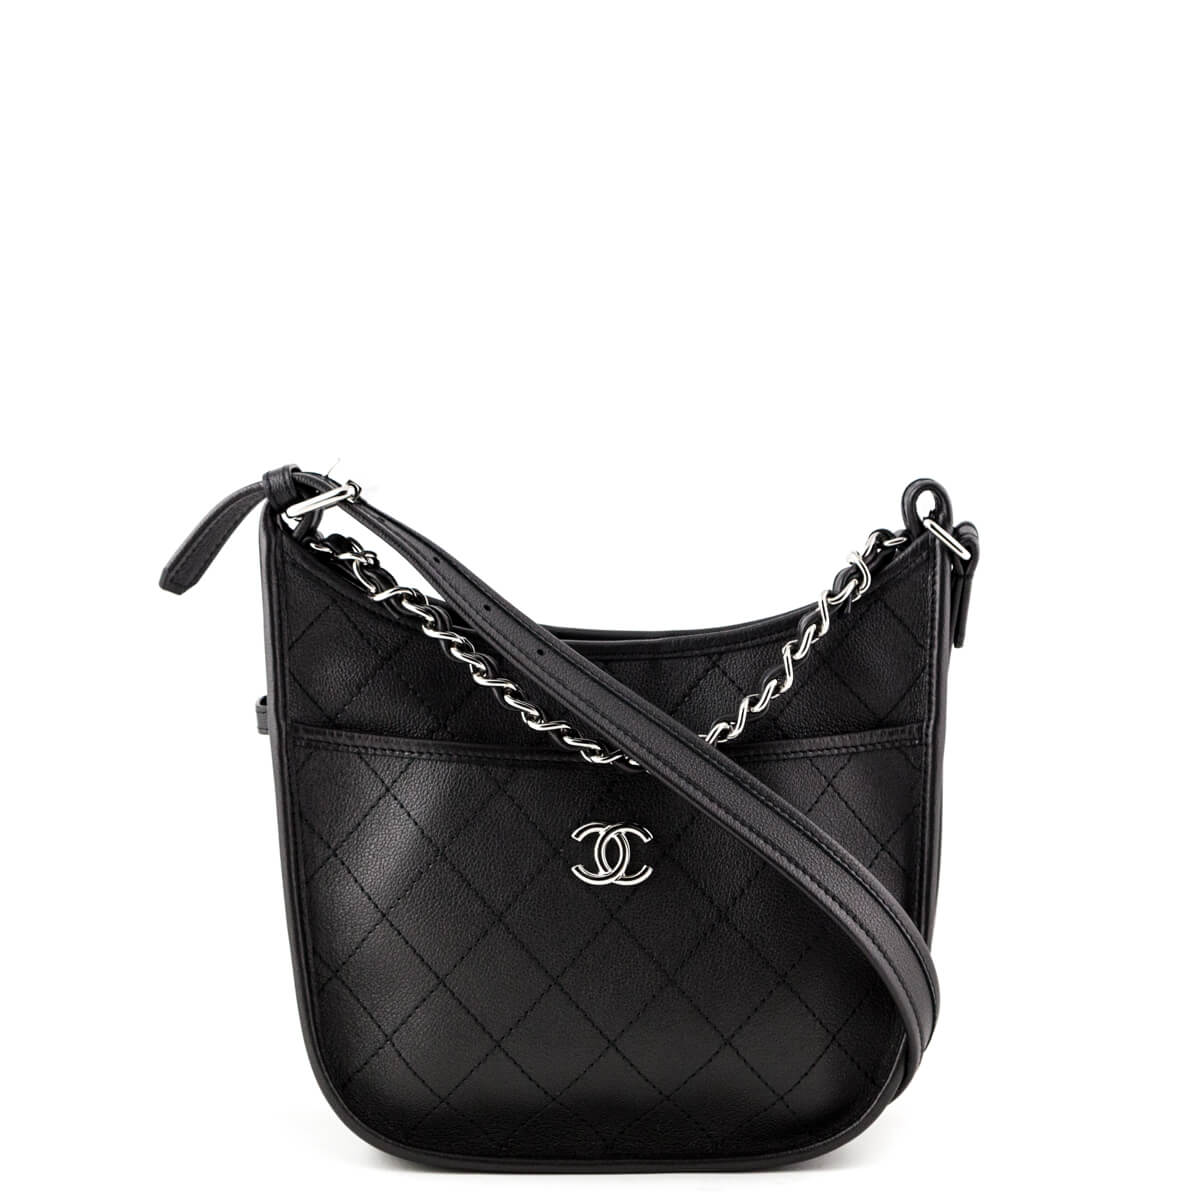 3a7764bc8a84 Chanel Black Quilted Calfskin Small Jungle Stroll Hobo Bag - LOVE that BAG  - Preowned Authentic ...